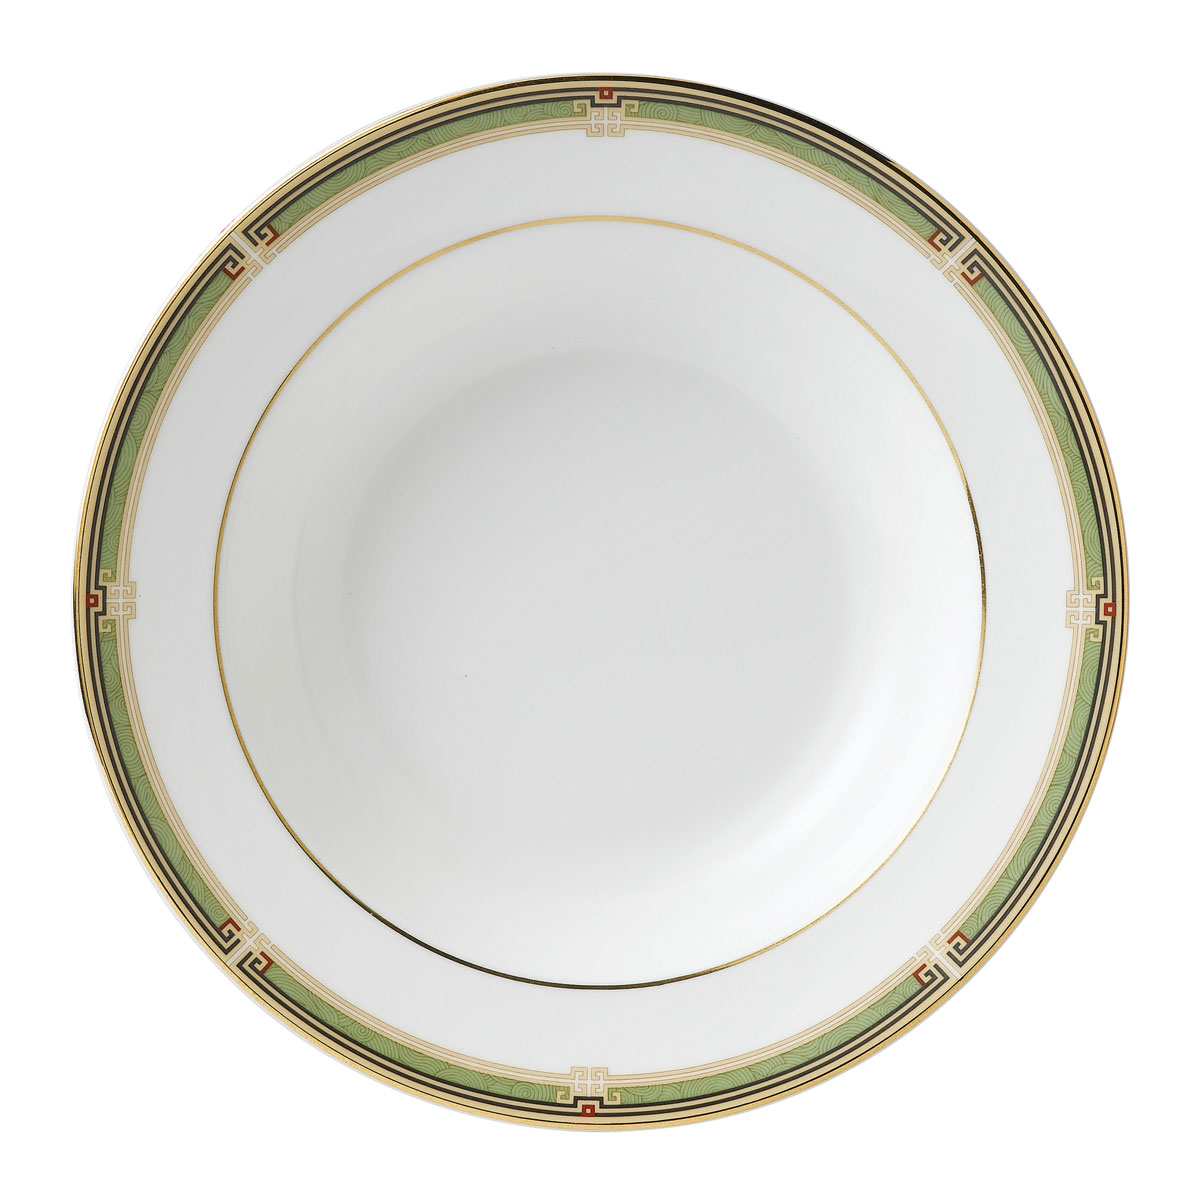 "Wedgwood Oberon Rim Soup 8"" Border"